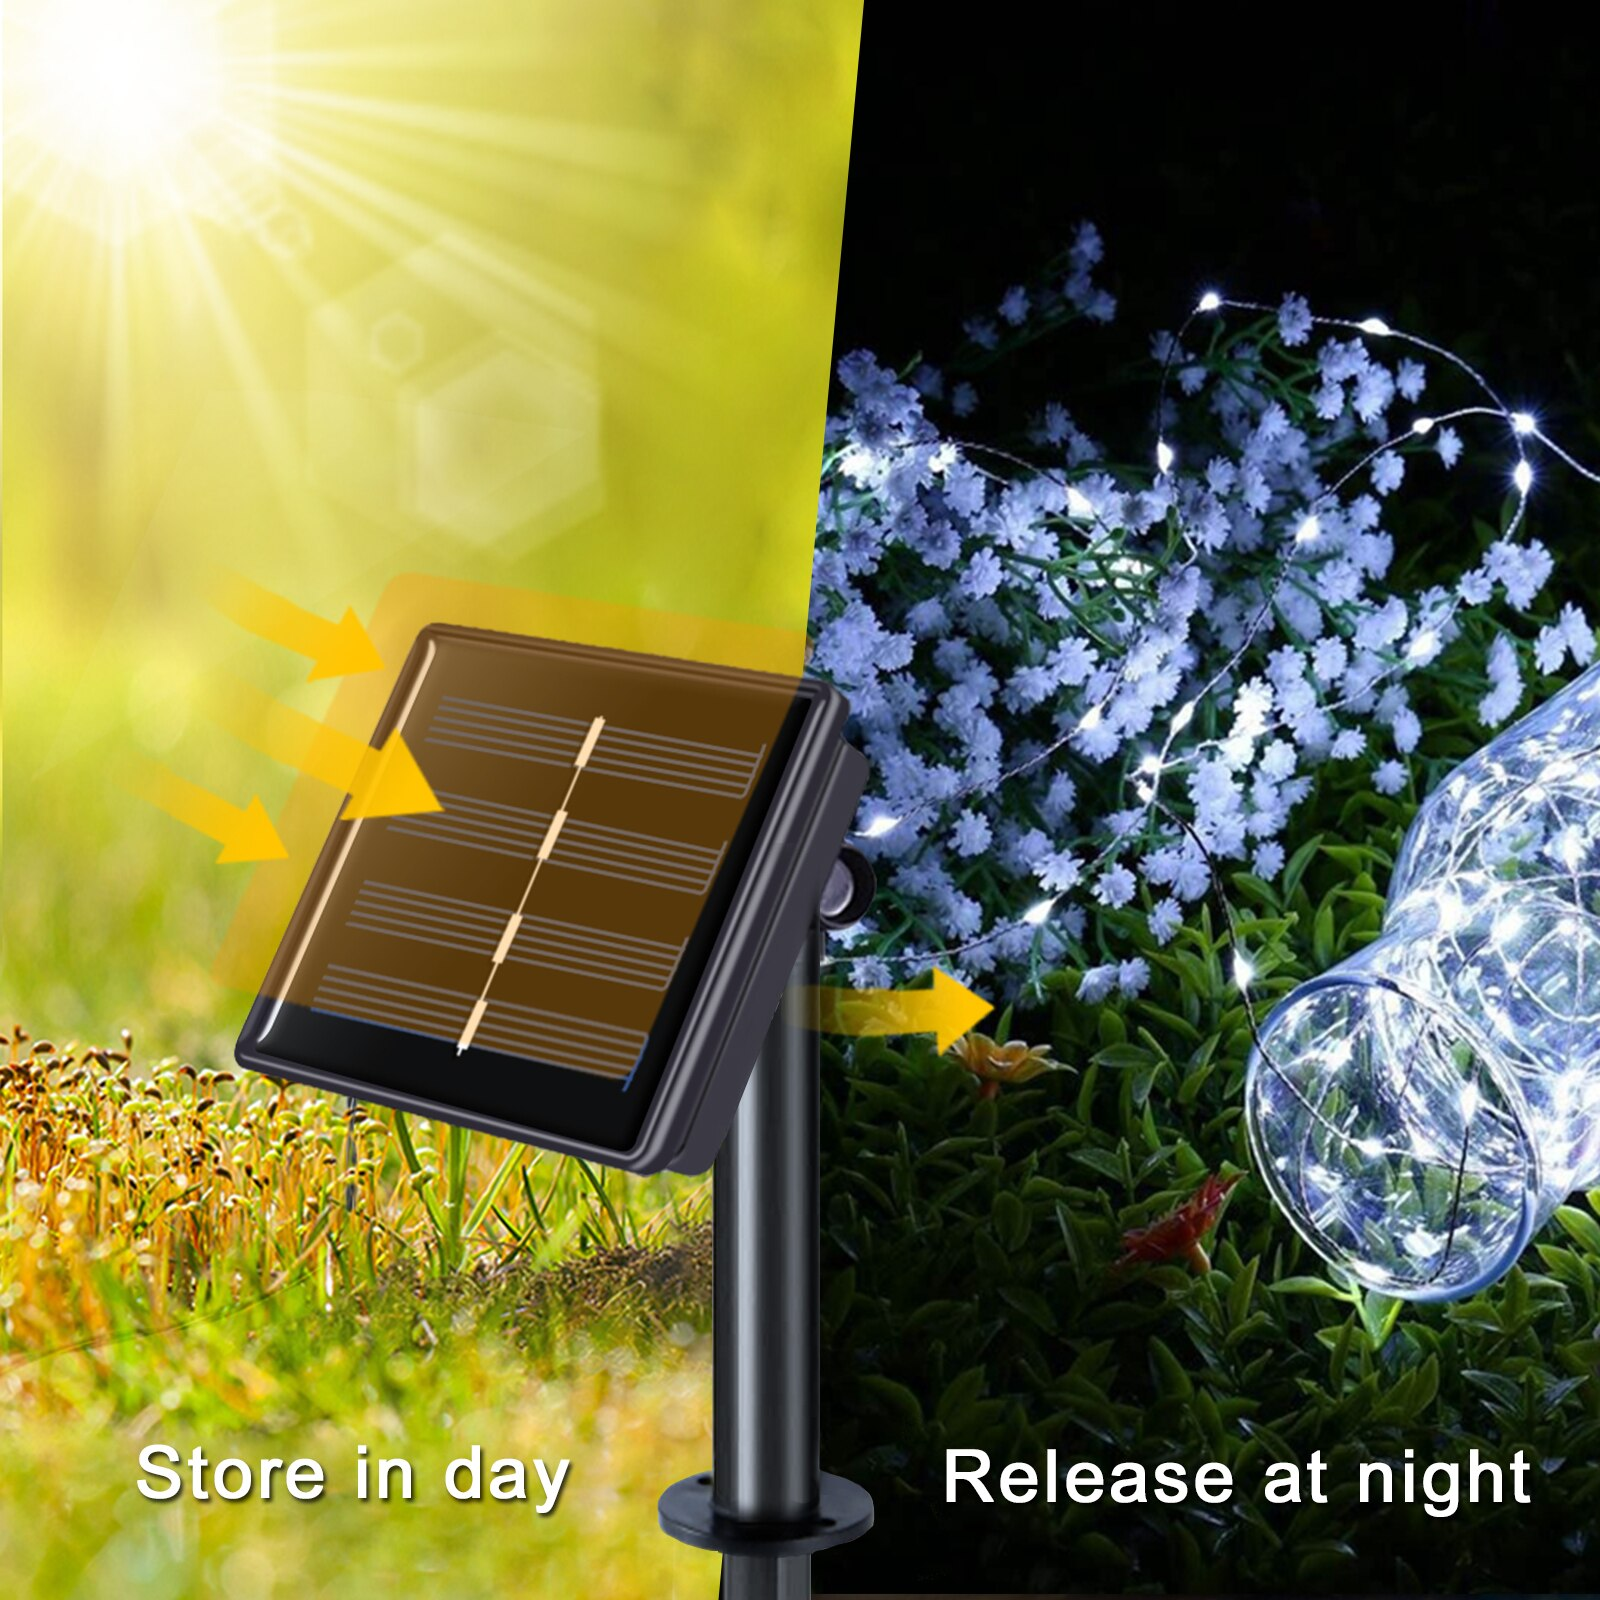 Hcc5e50763e614ad7800e3bb2698ec54ch - 50/100/200/330 LED Solar Light Outdoor Lamp String Lights For Holiday Christmas Party Waterproof Fairy Lights Garden Garland